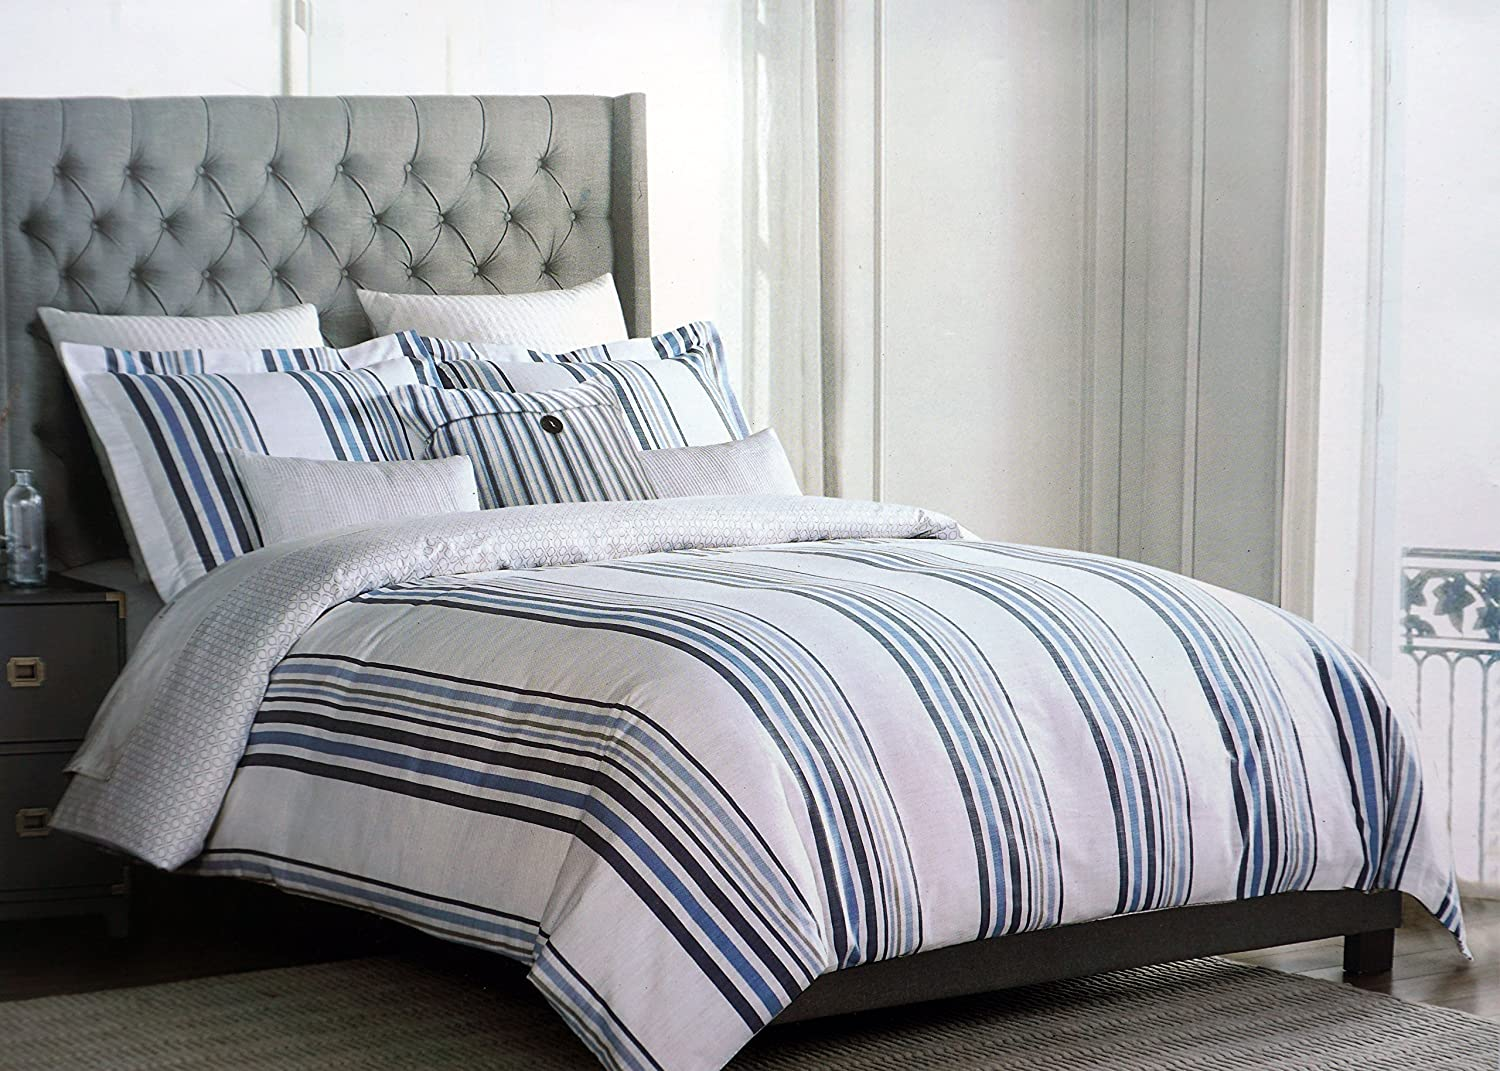 Tahari Home Bedding 3 Piece King Size Bed Reversible Duvet Cover Set Linen Texture Blue Beige Stripes of Varying Widths on a White Background